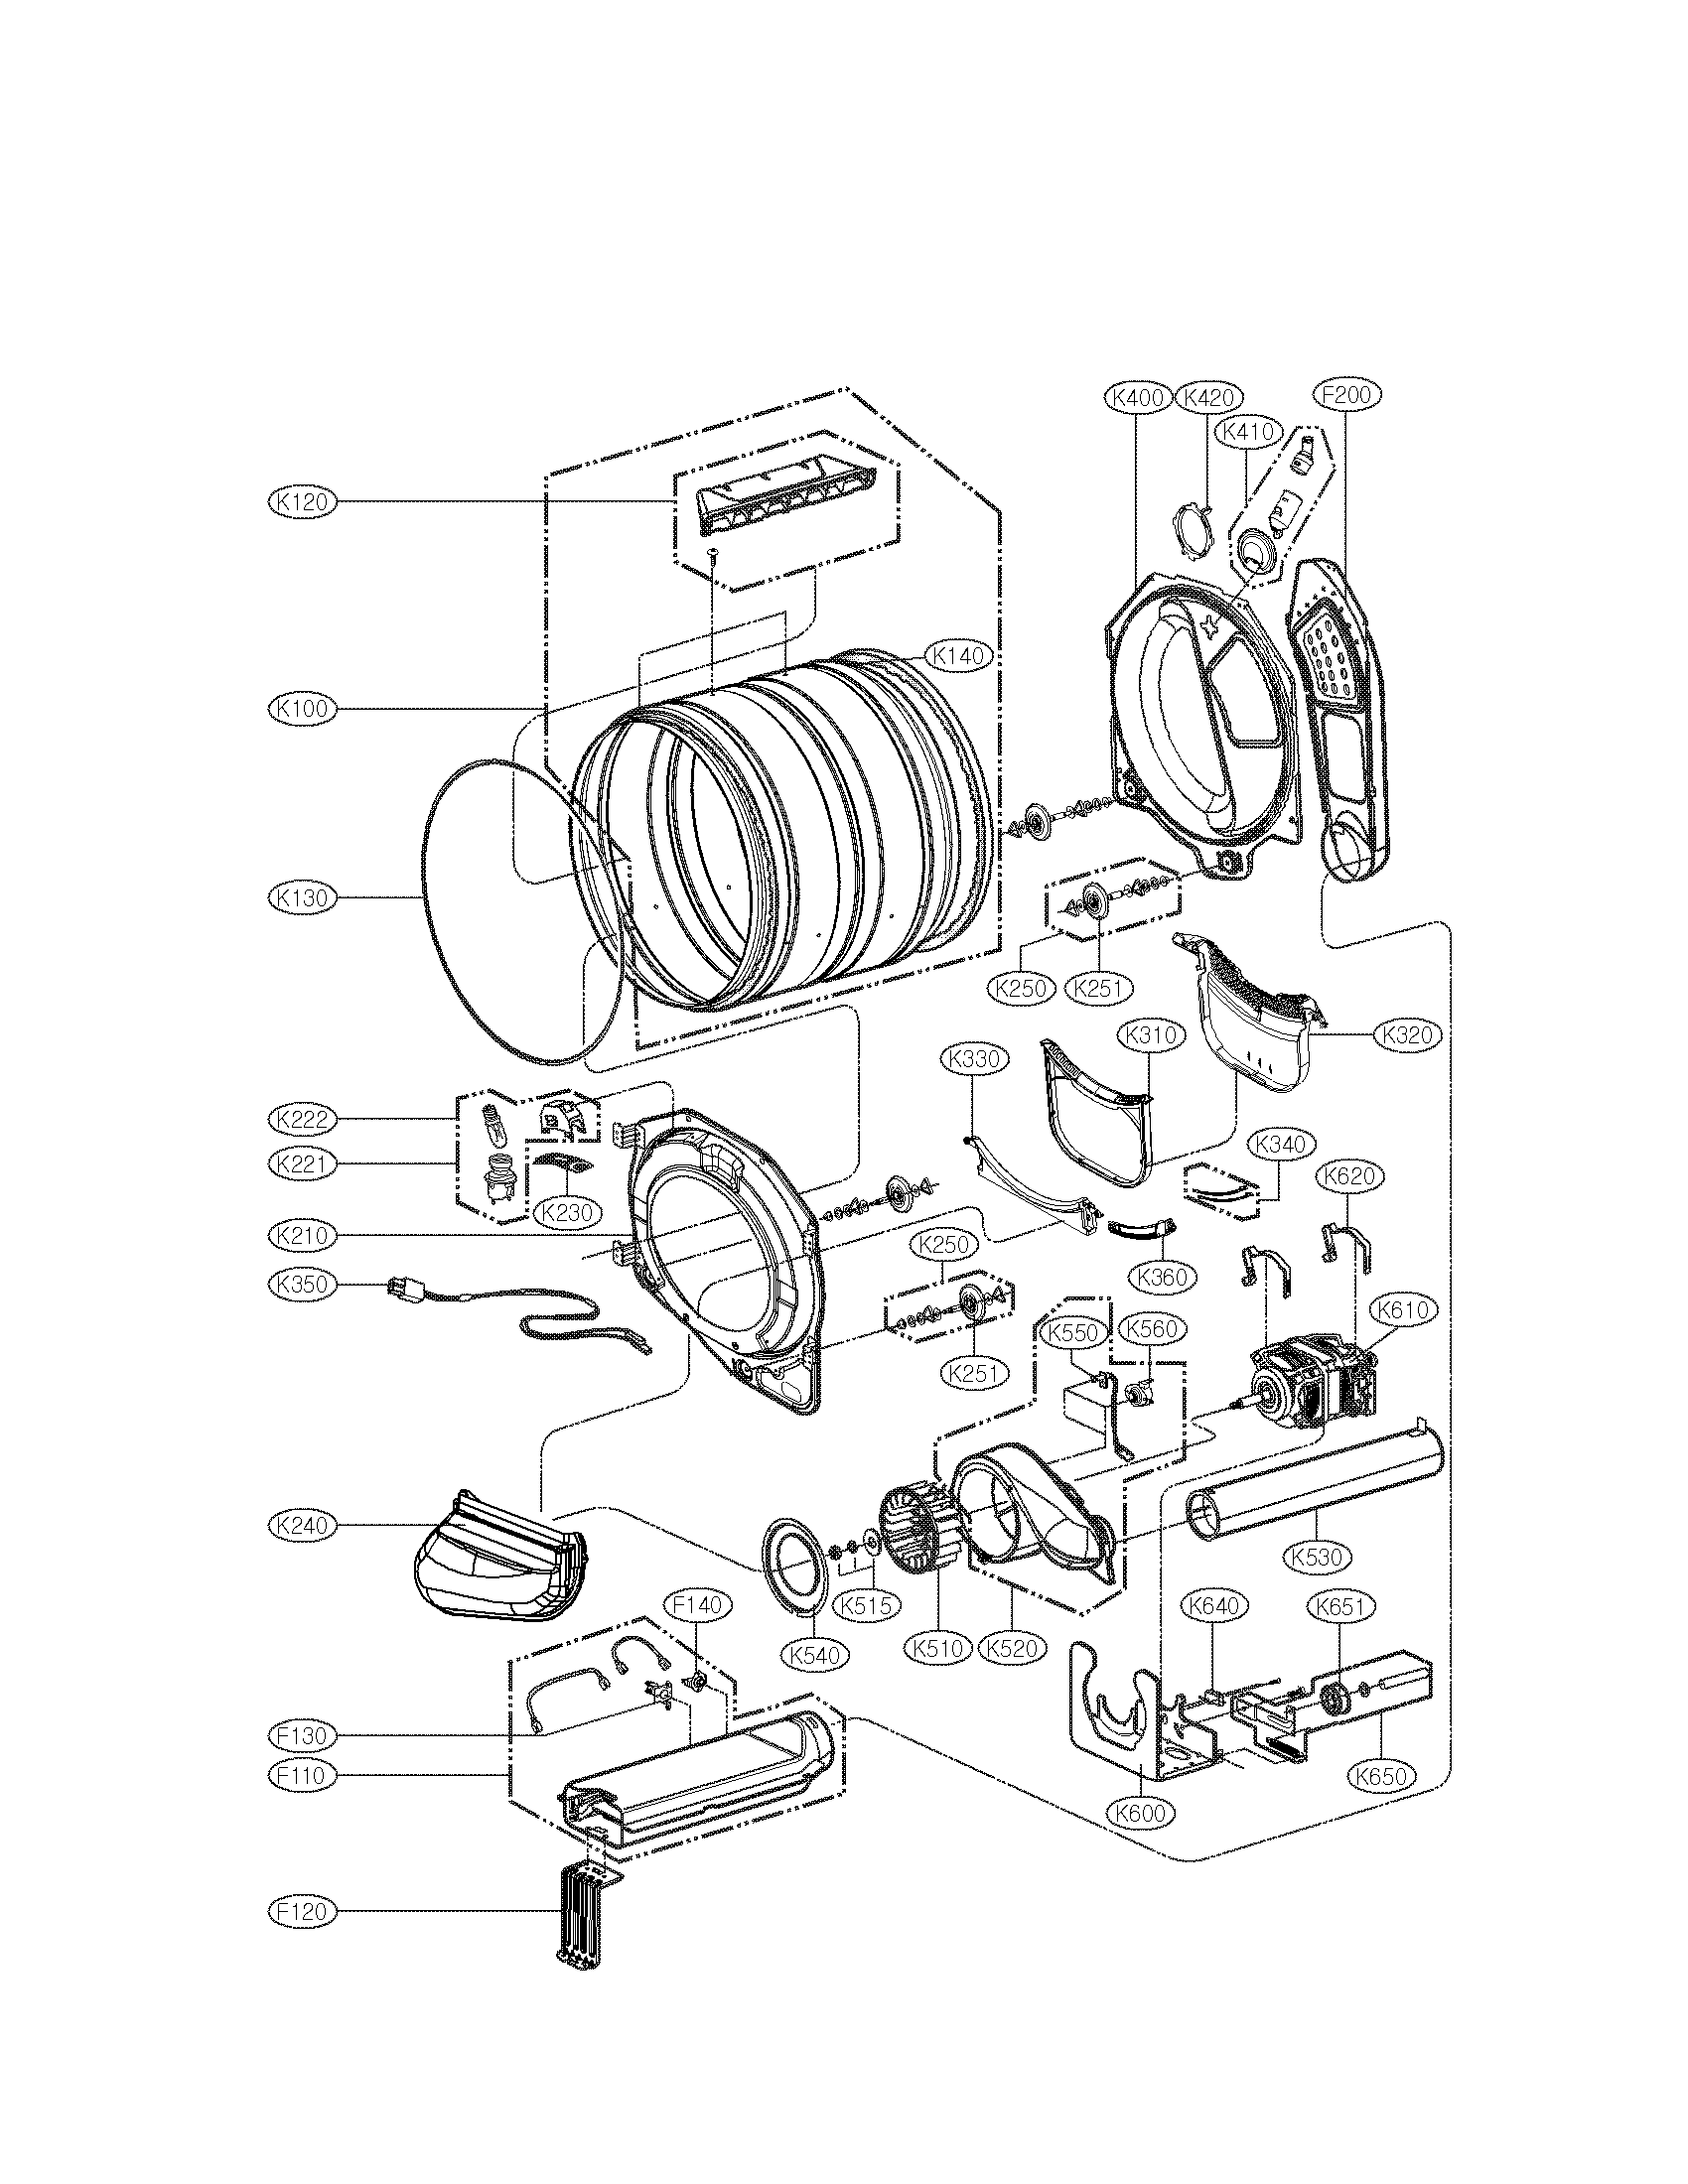 DRUM AND MOTOR ASSEMBLY Diagram & Parts List for Model